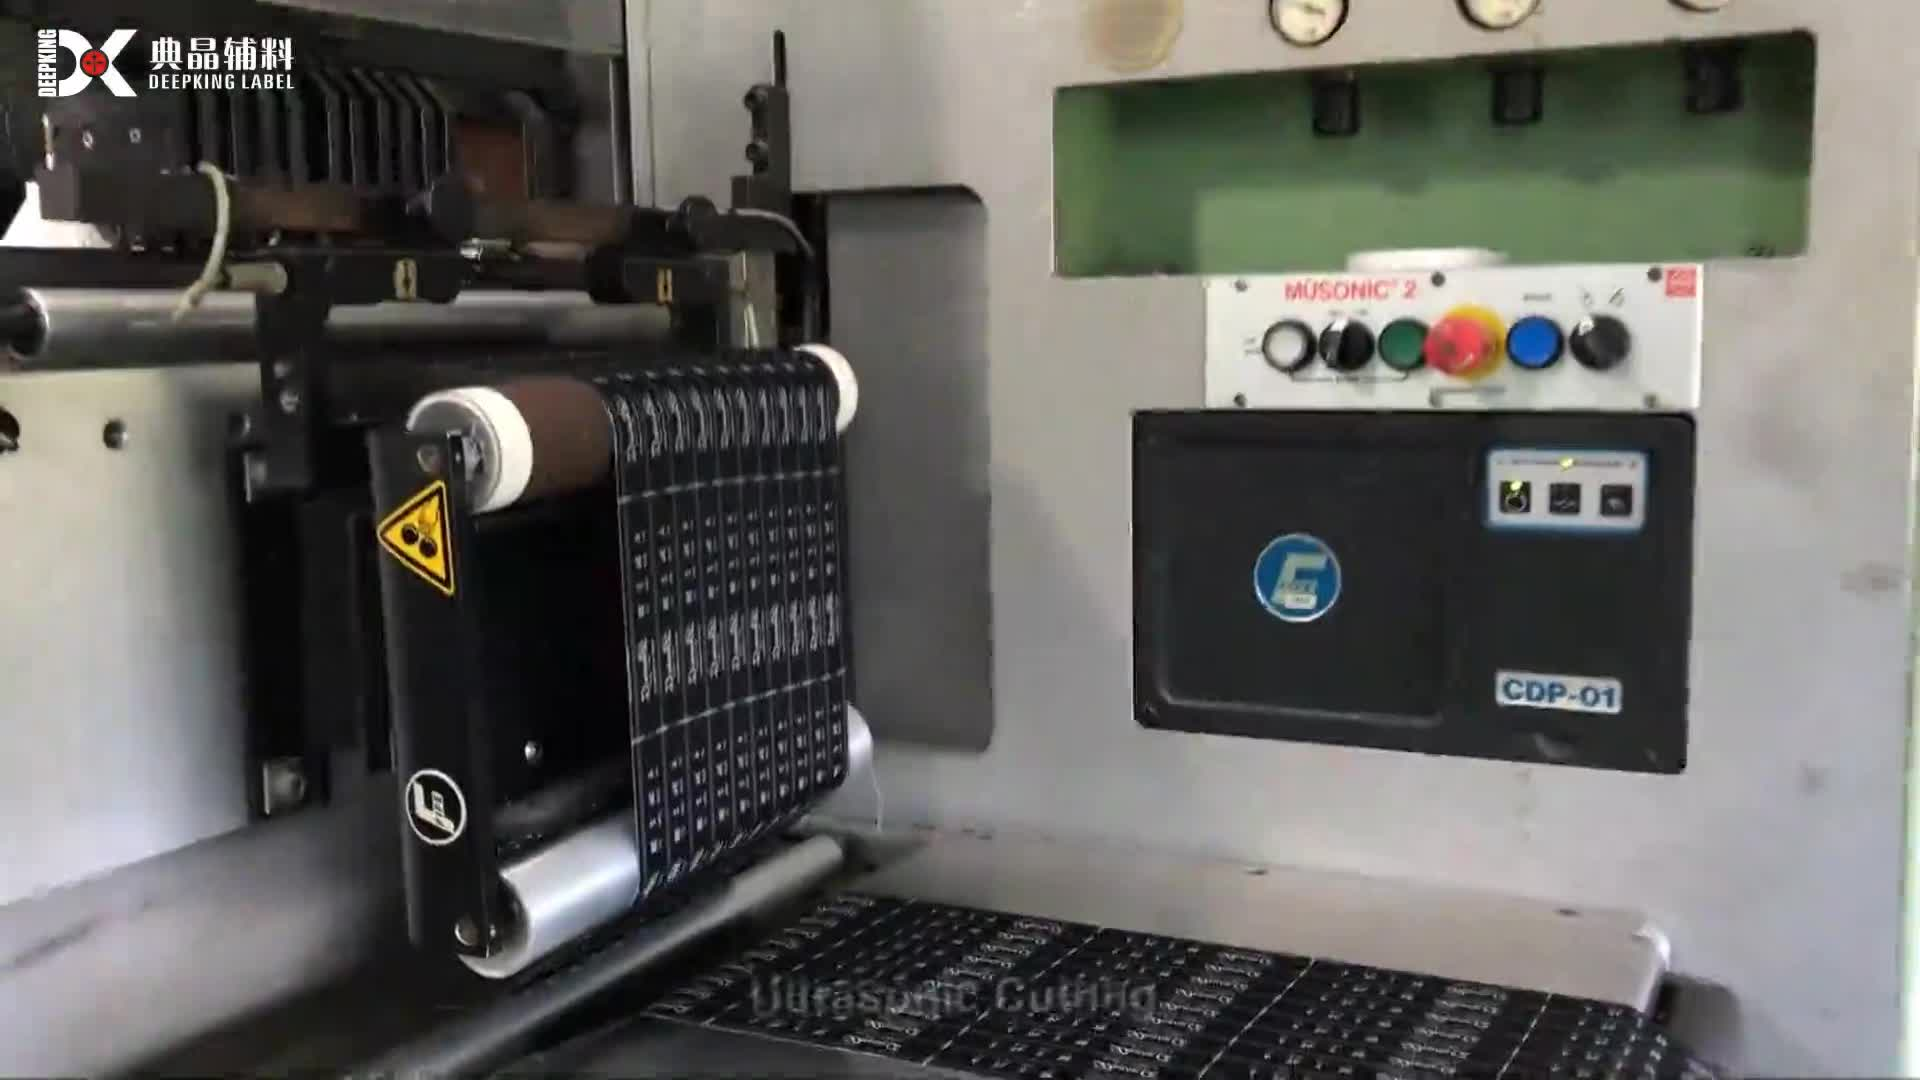 DEEPKING woven clothing label maker